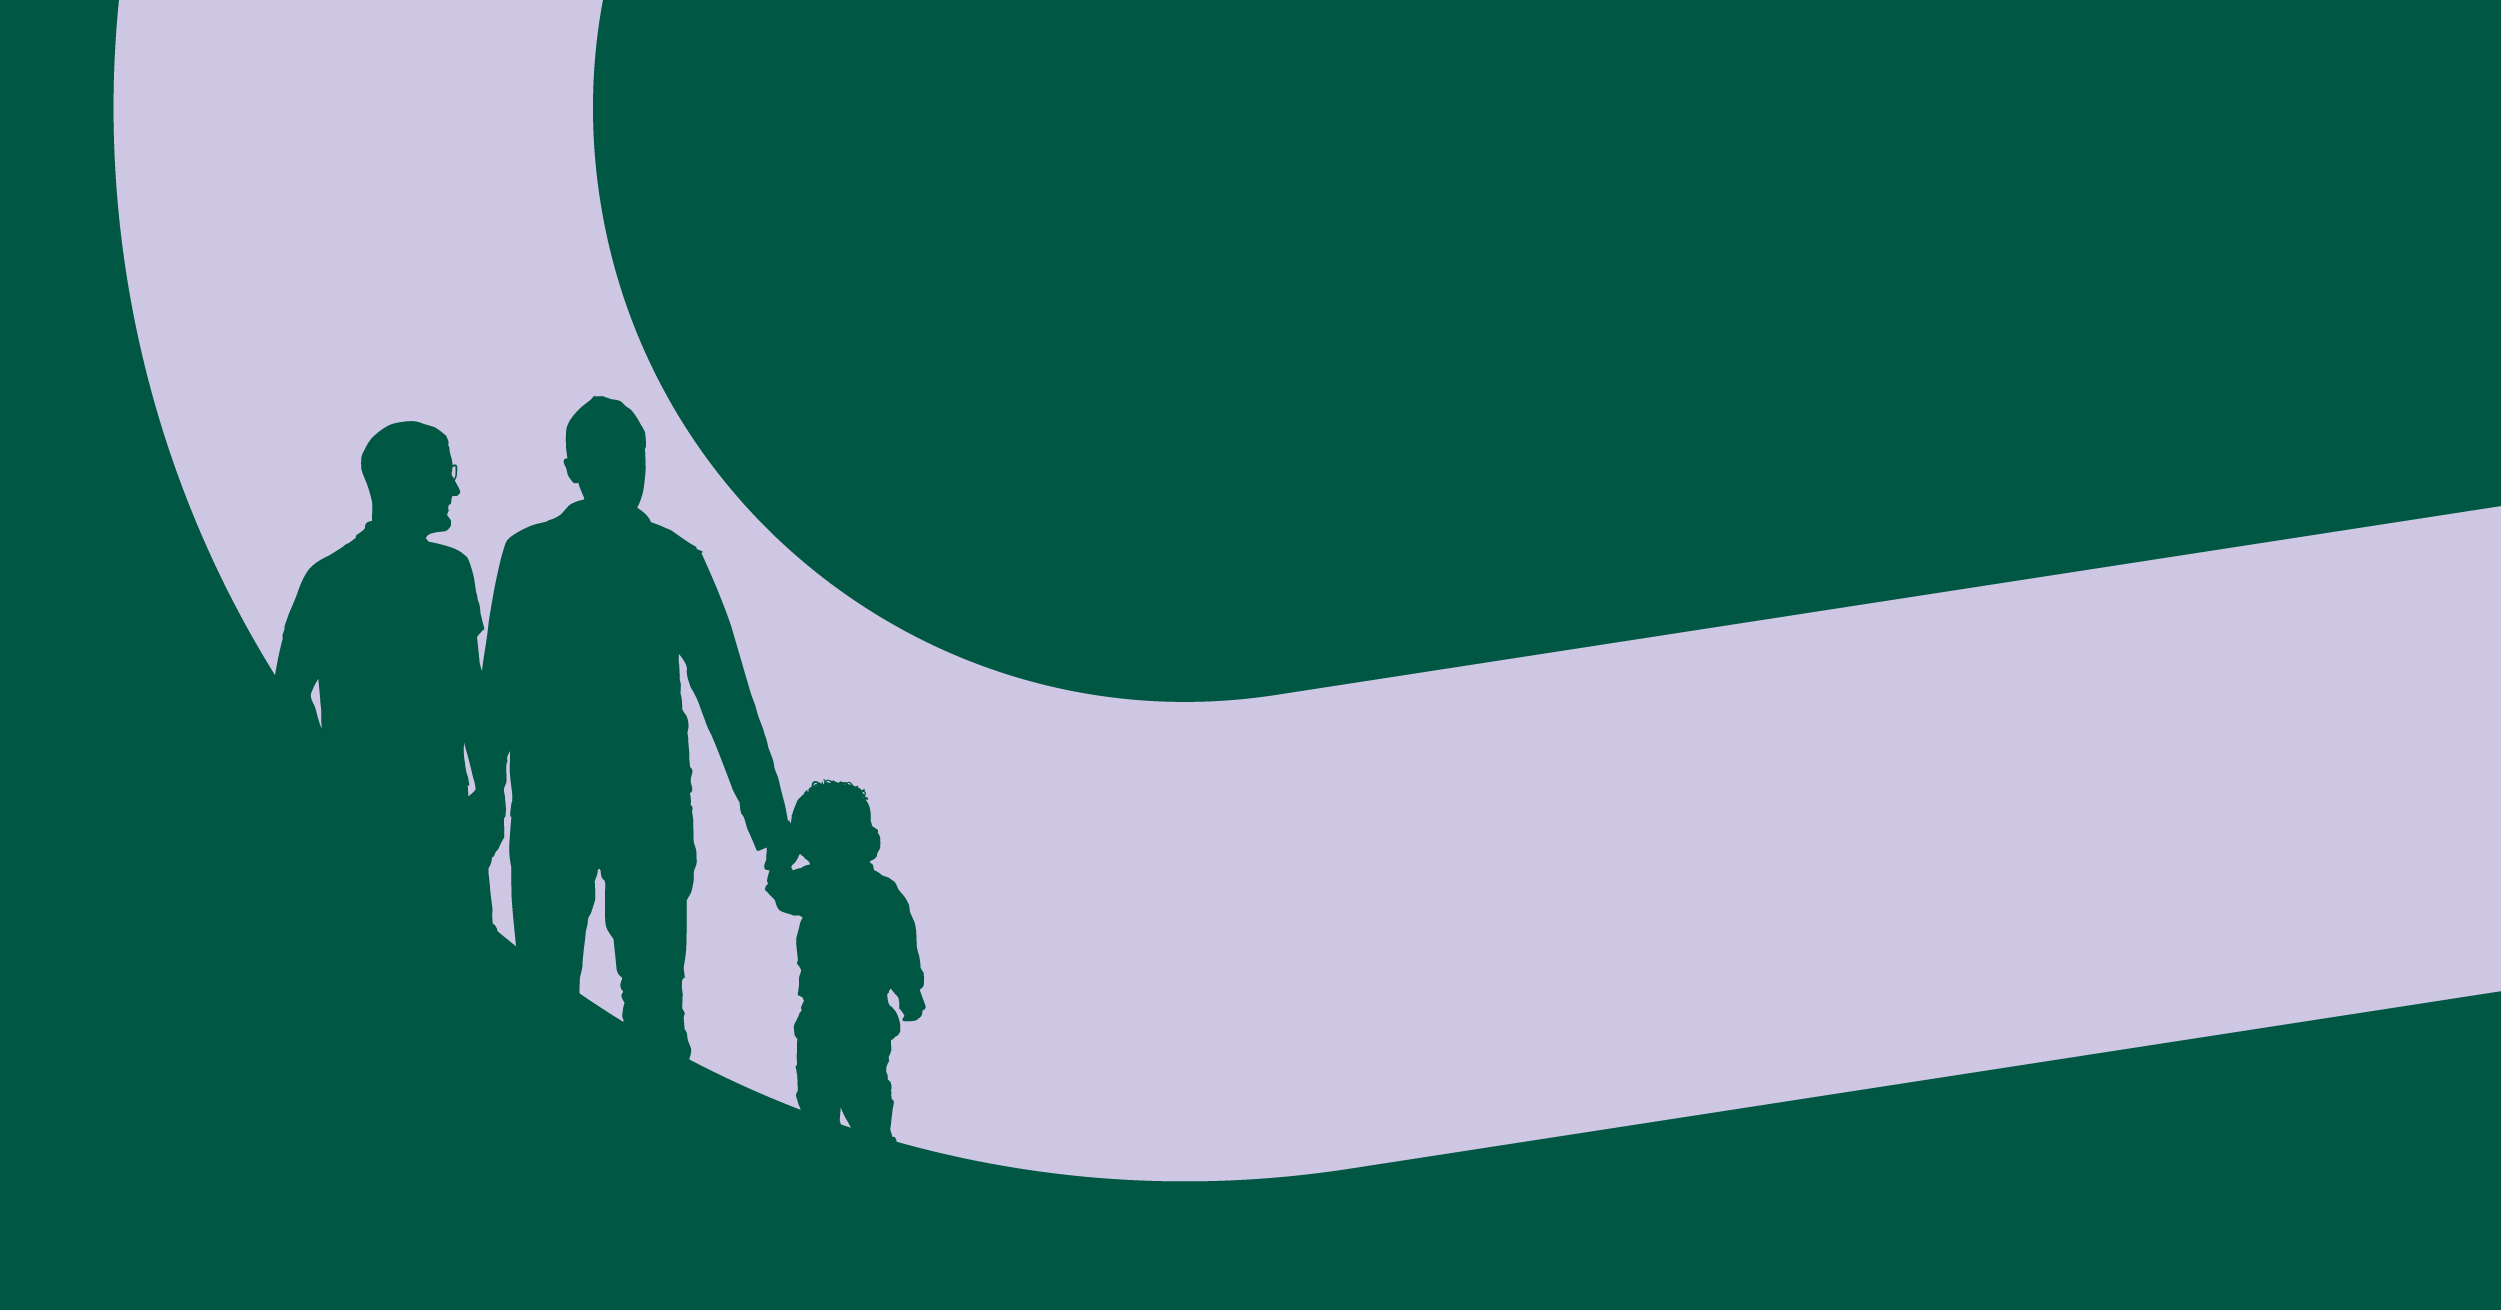 Silhouettes of two adults and a child